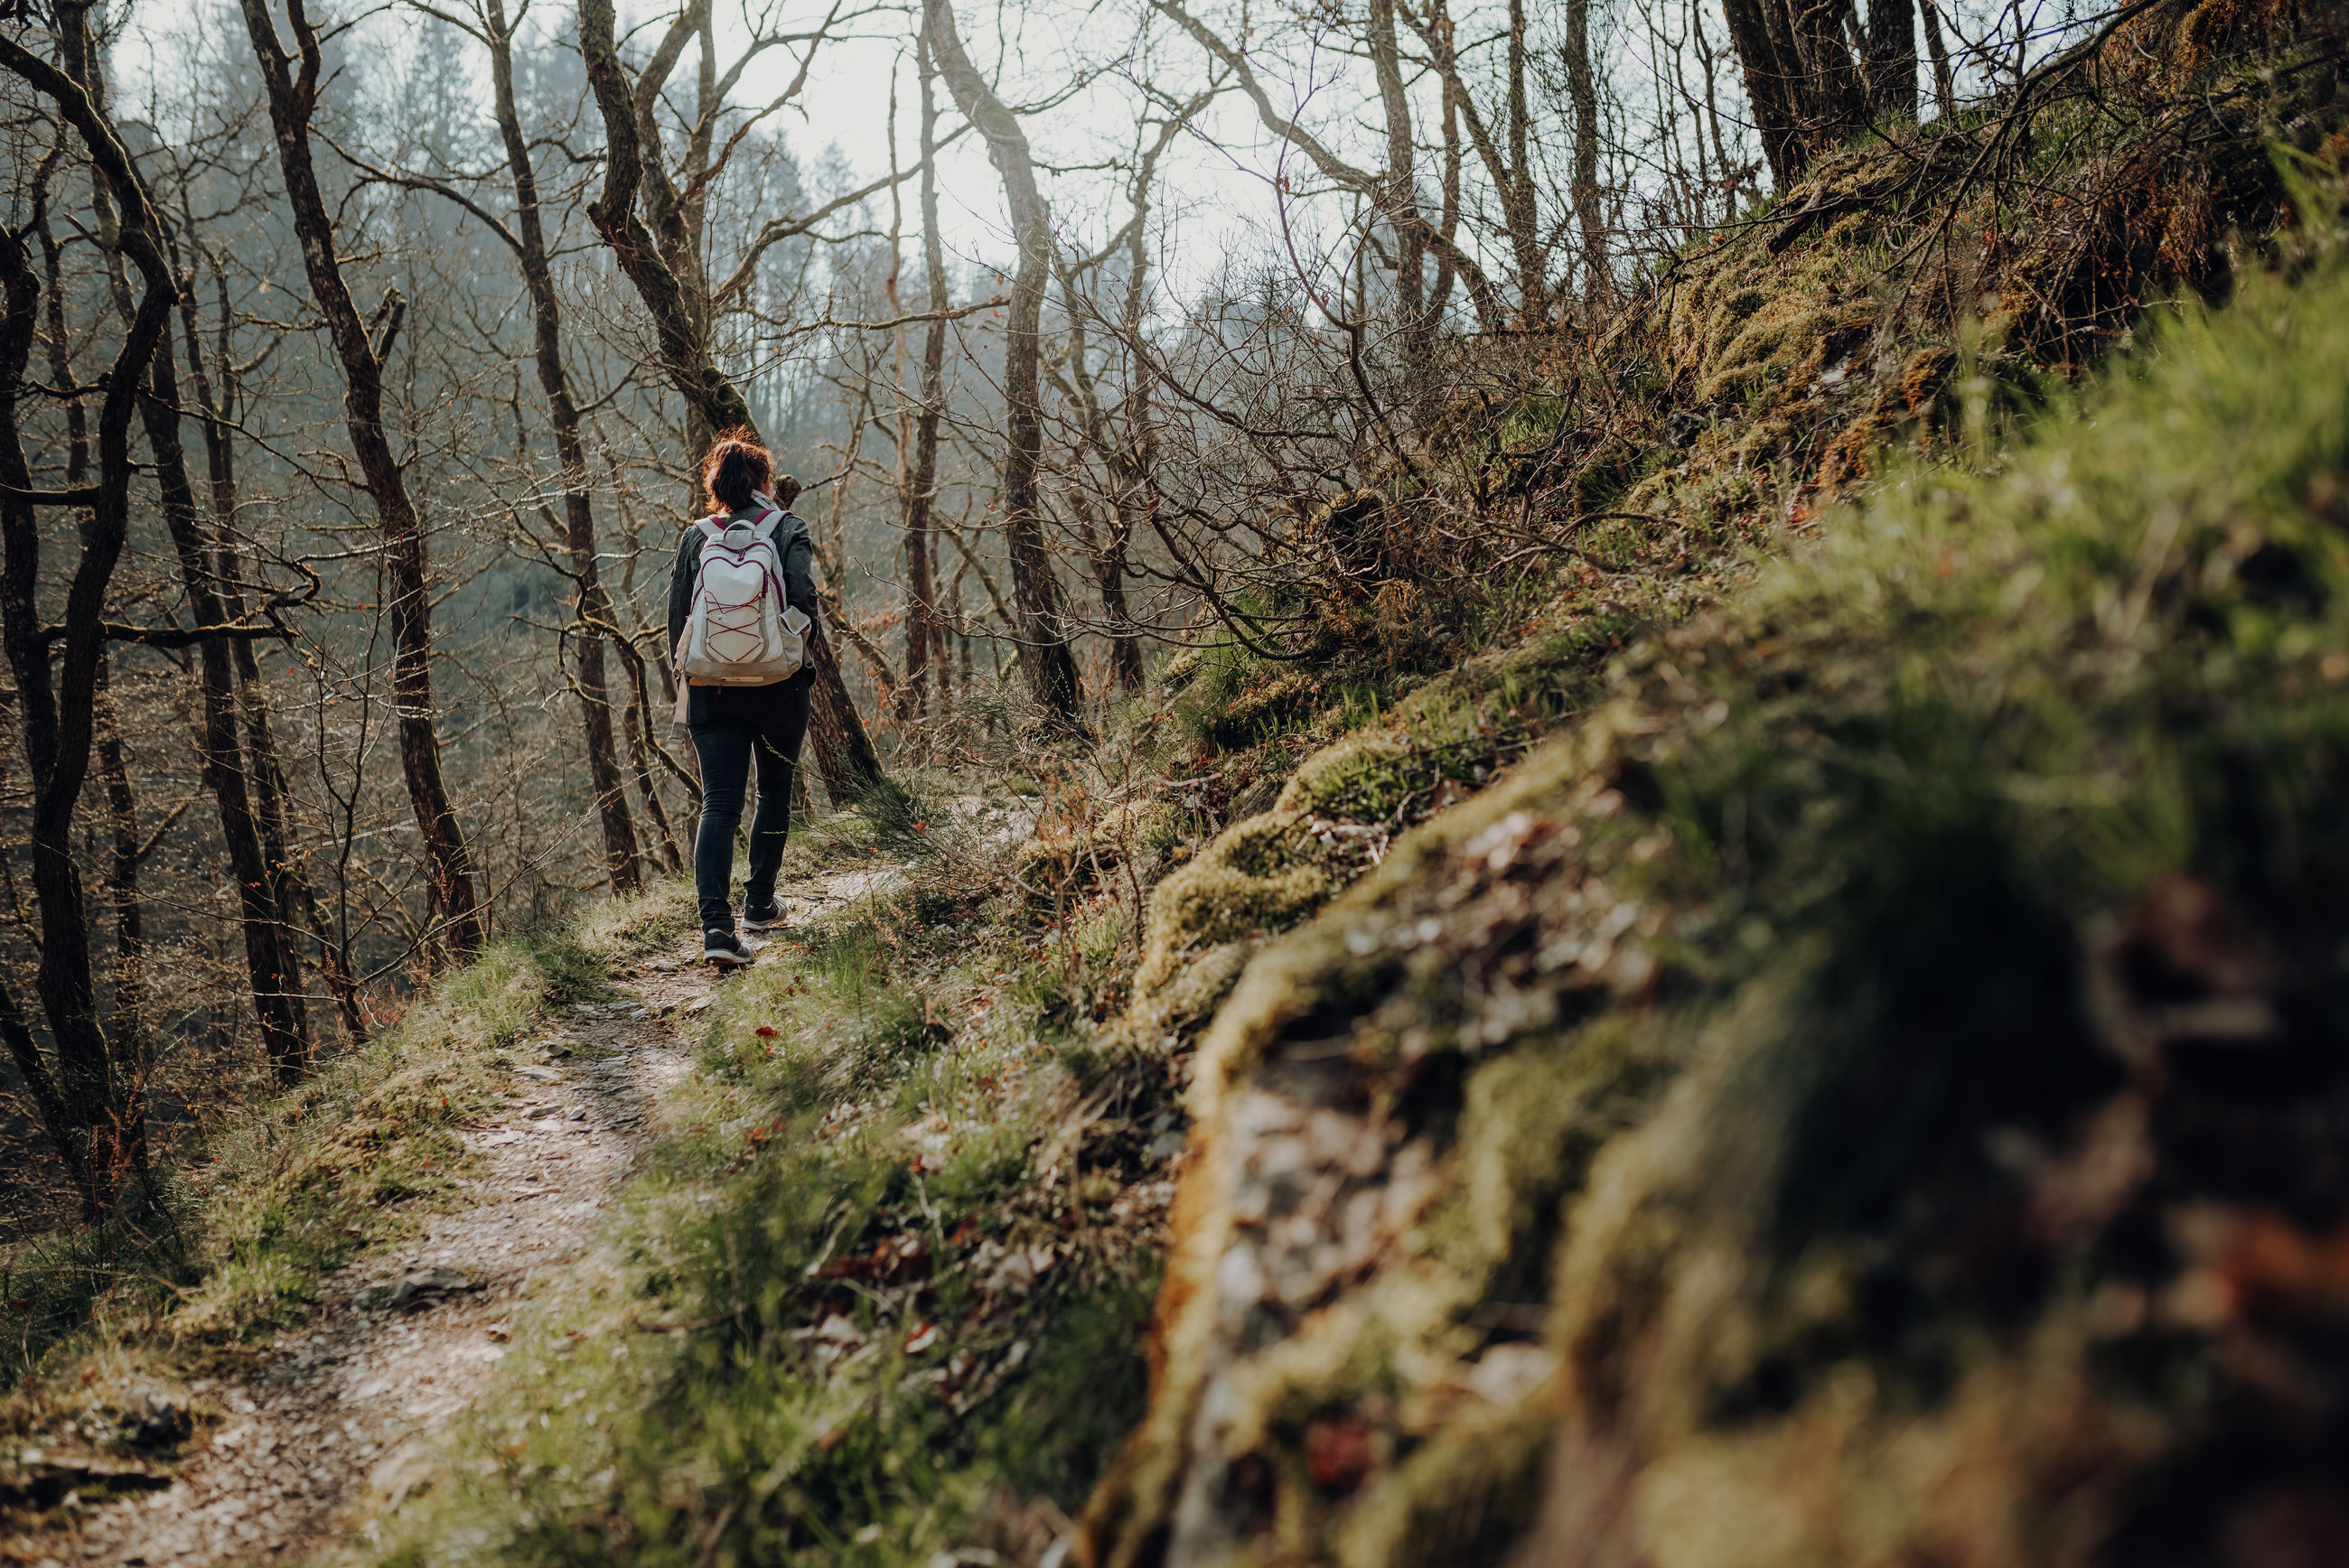 WOMAN WALKING ON FOOTPATH IN FOREST